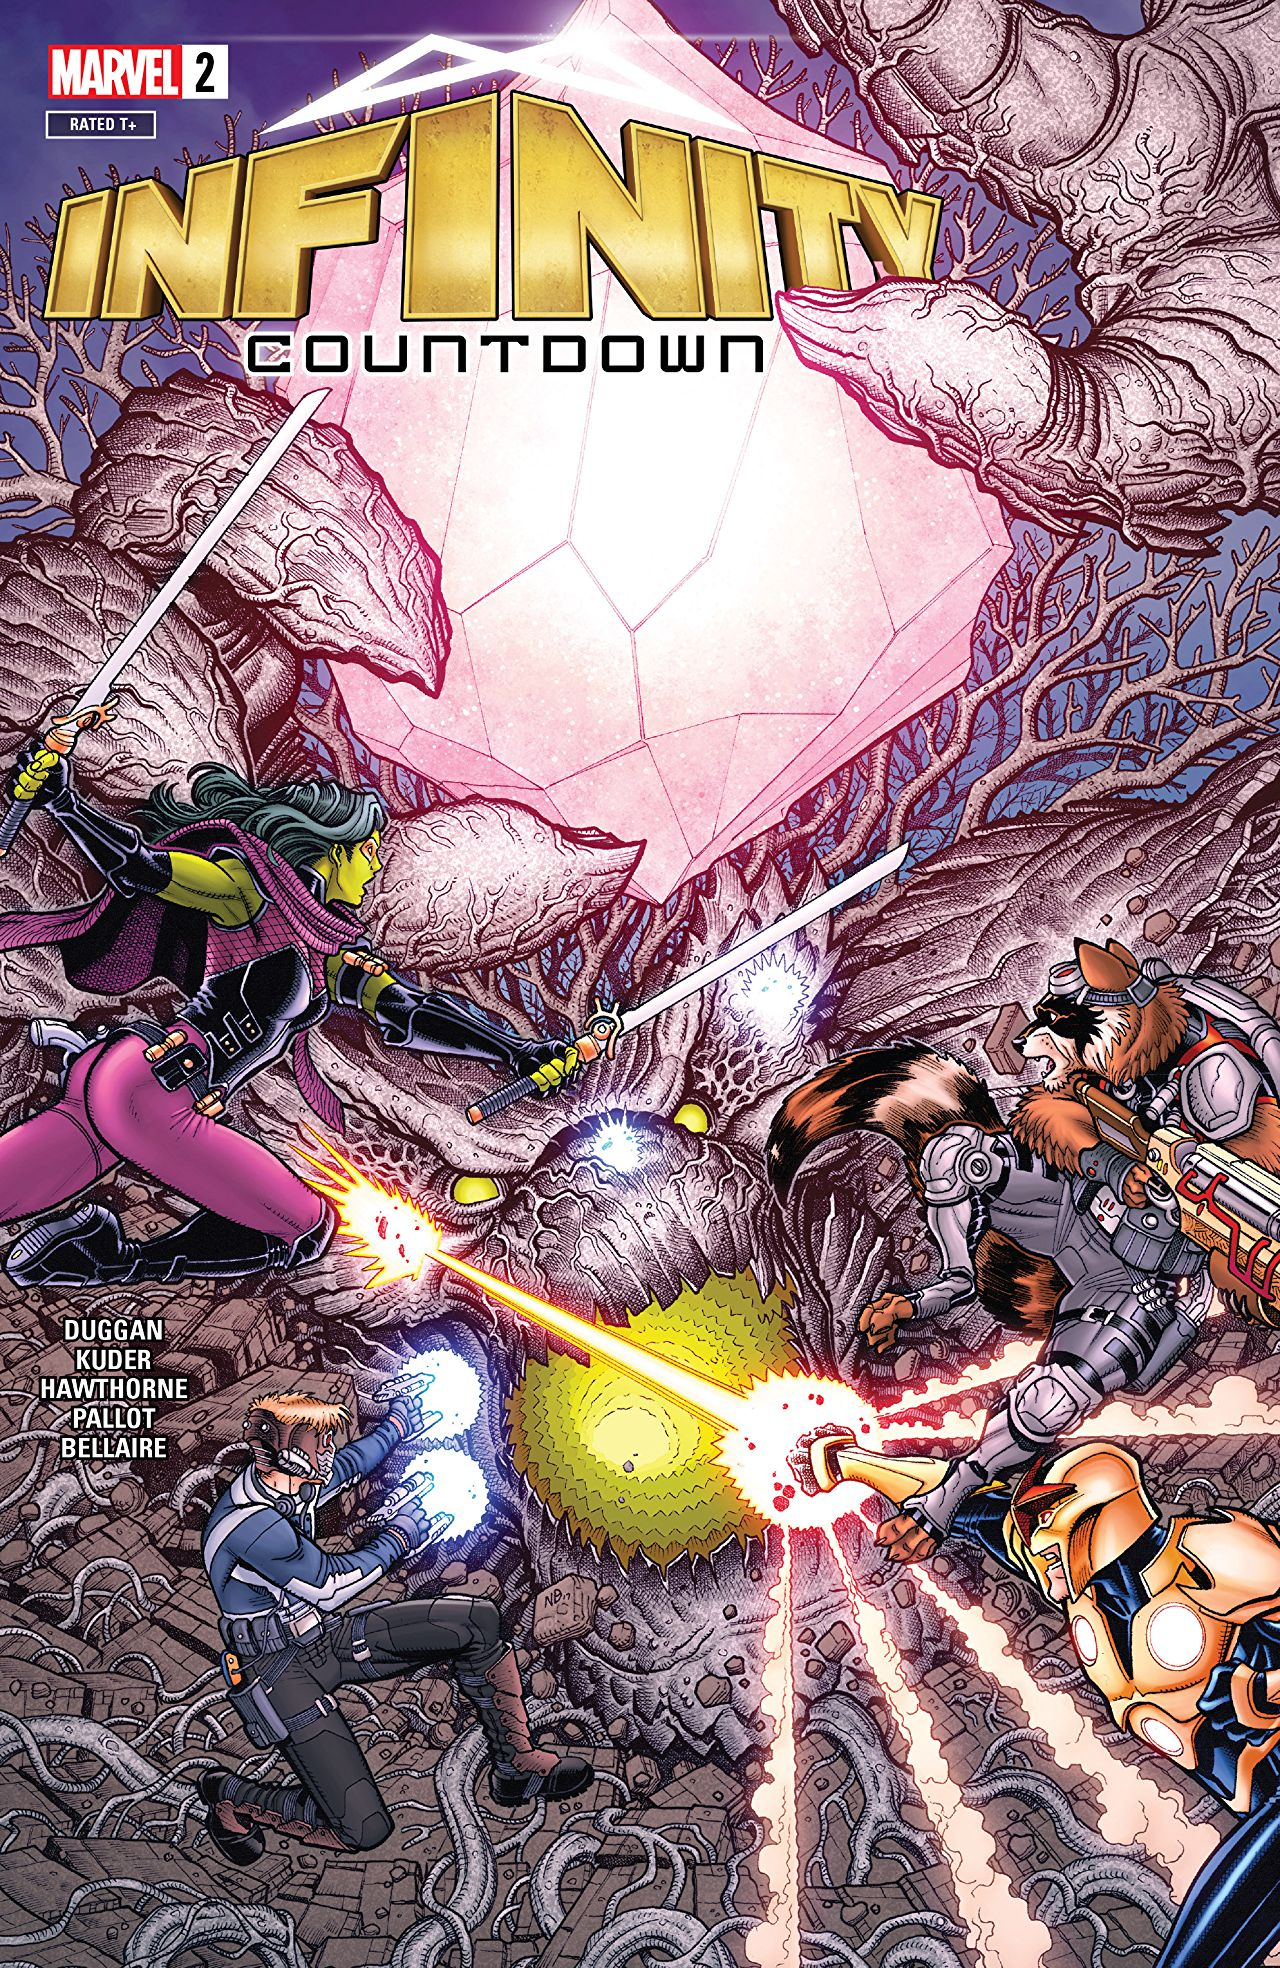 Infinity Countdown #2 Review